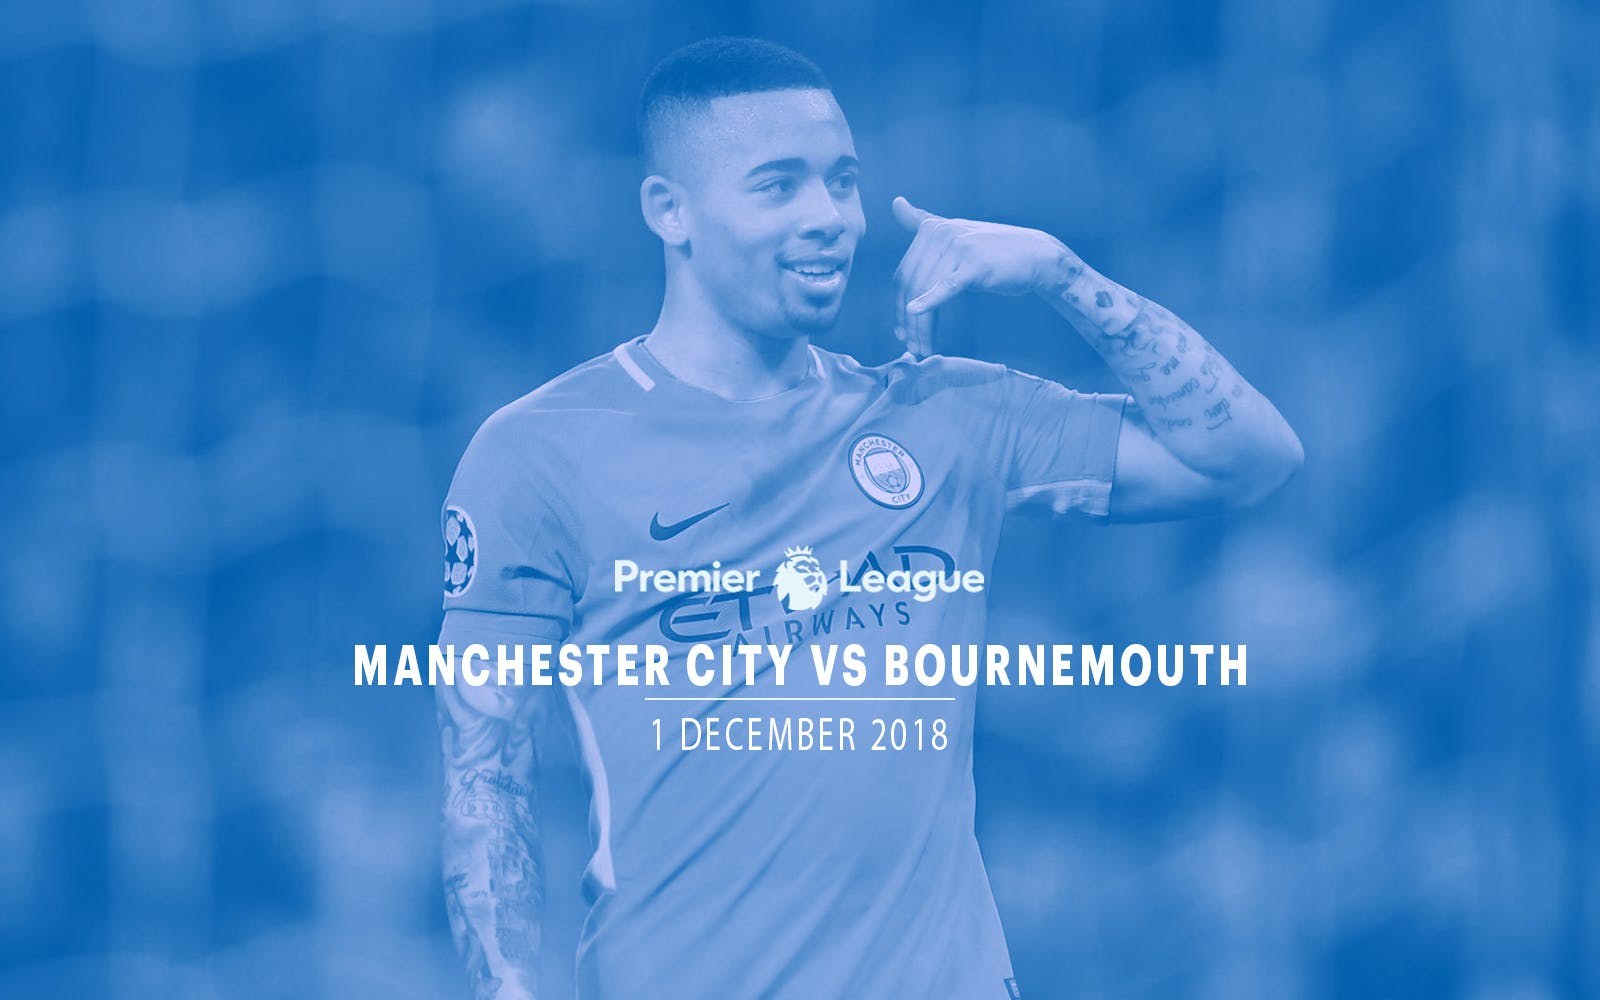 manchester city vs bournemouth 1st dec 2018-1